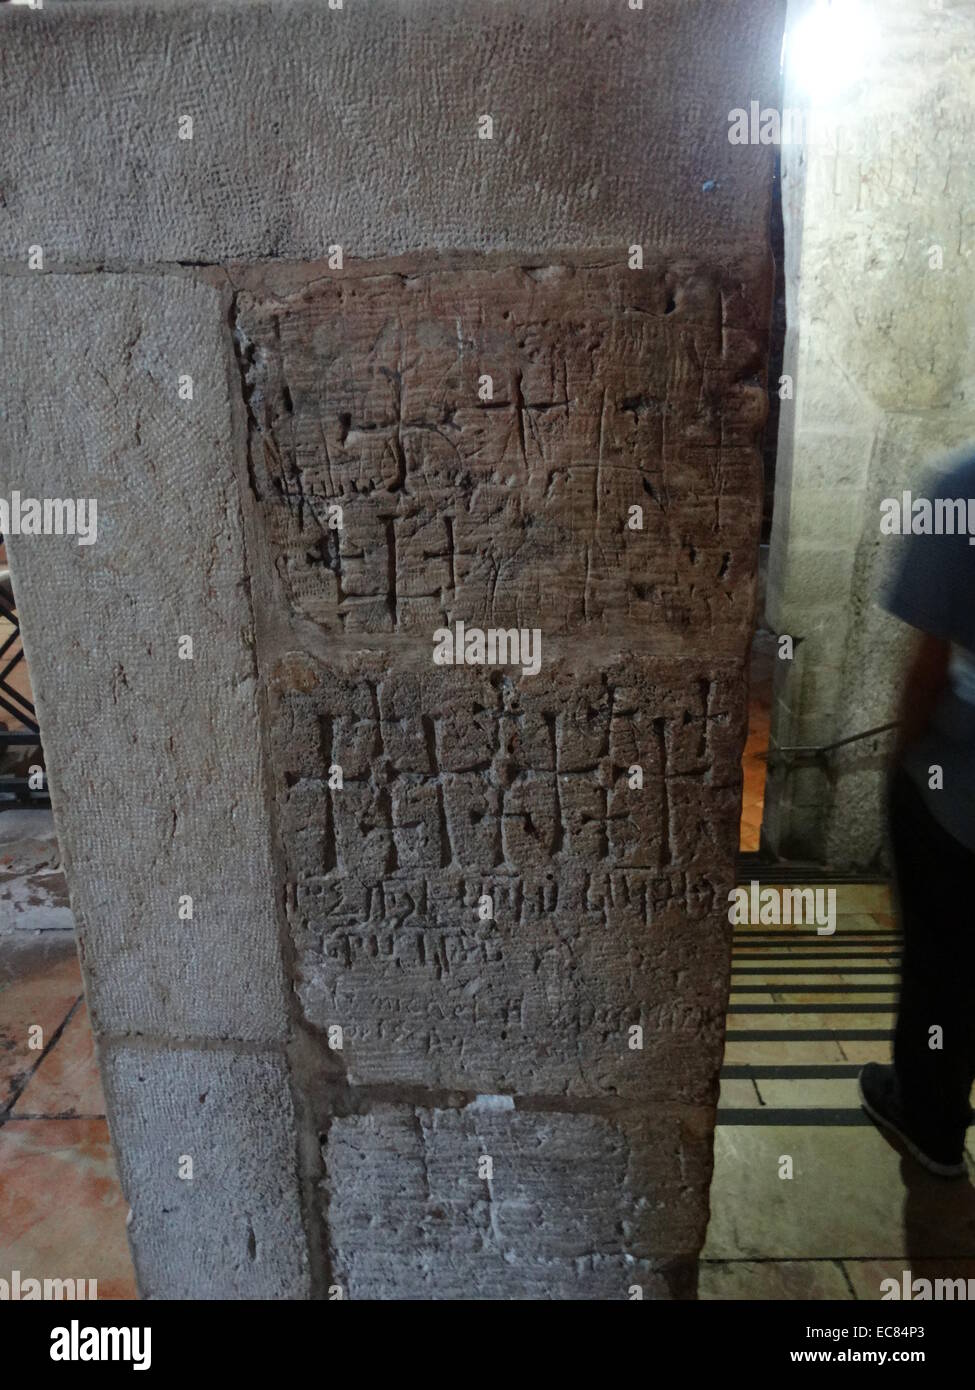 Crusader graffiti in the Church of the Holy Sepulchre. - Stock Image